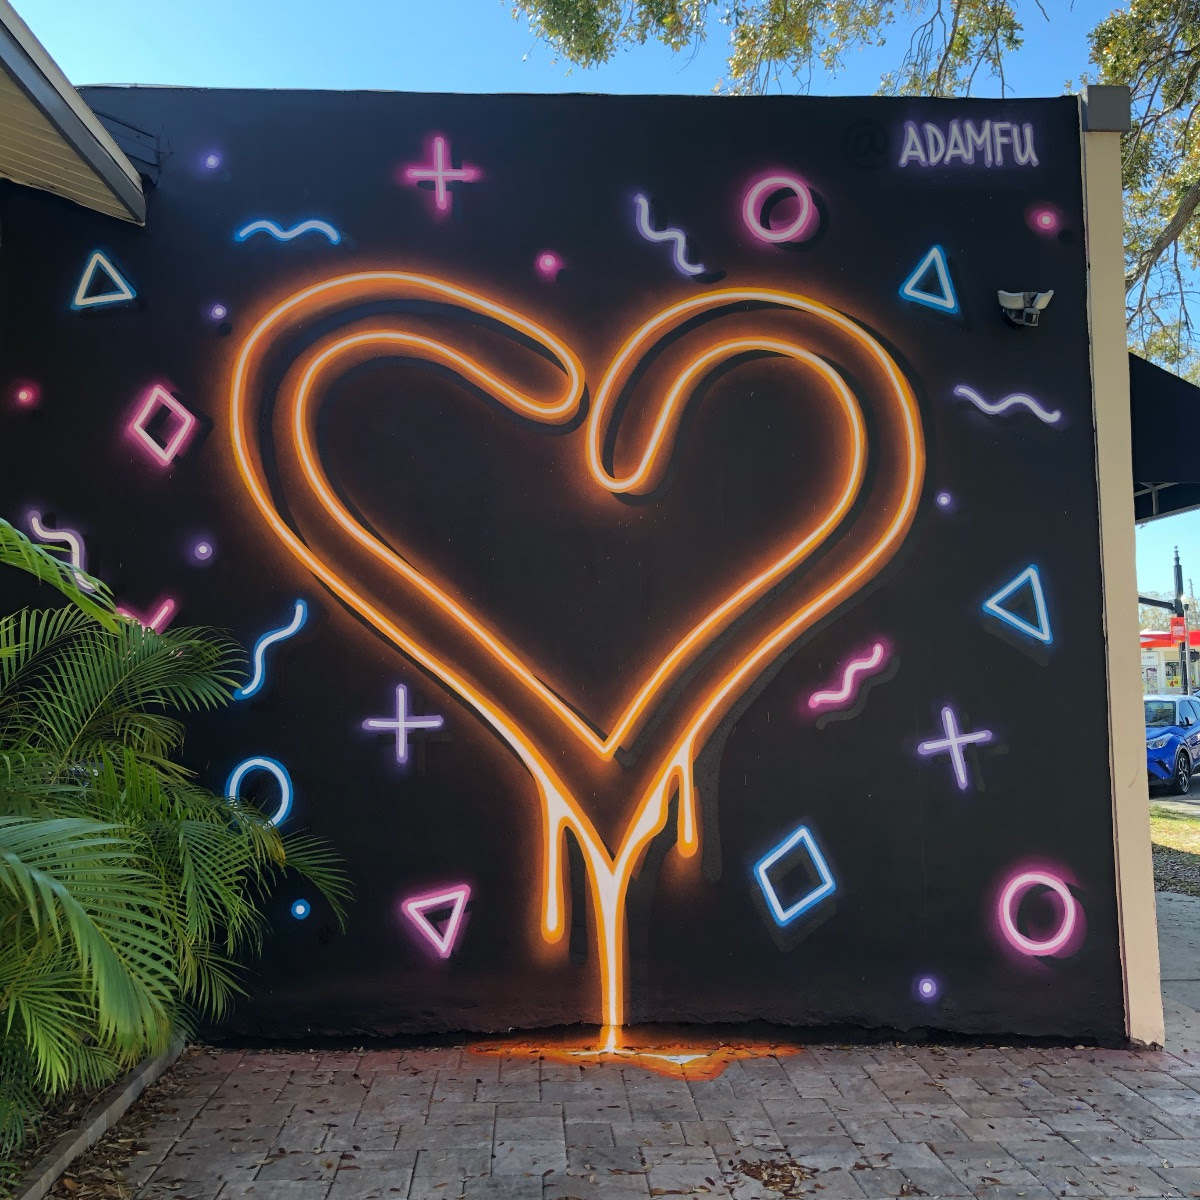 A black mural on the side of a building with a neon-look heart and symbols spray painted on it.